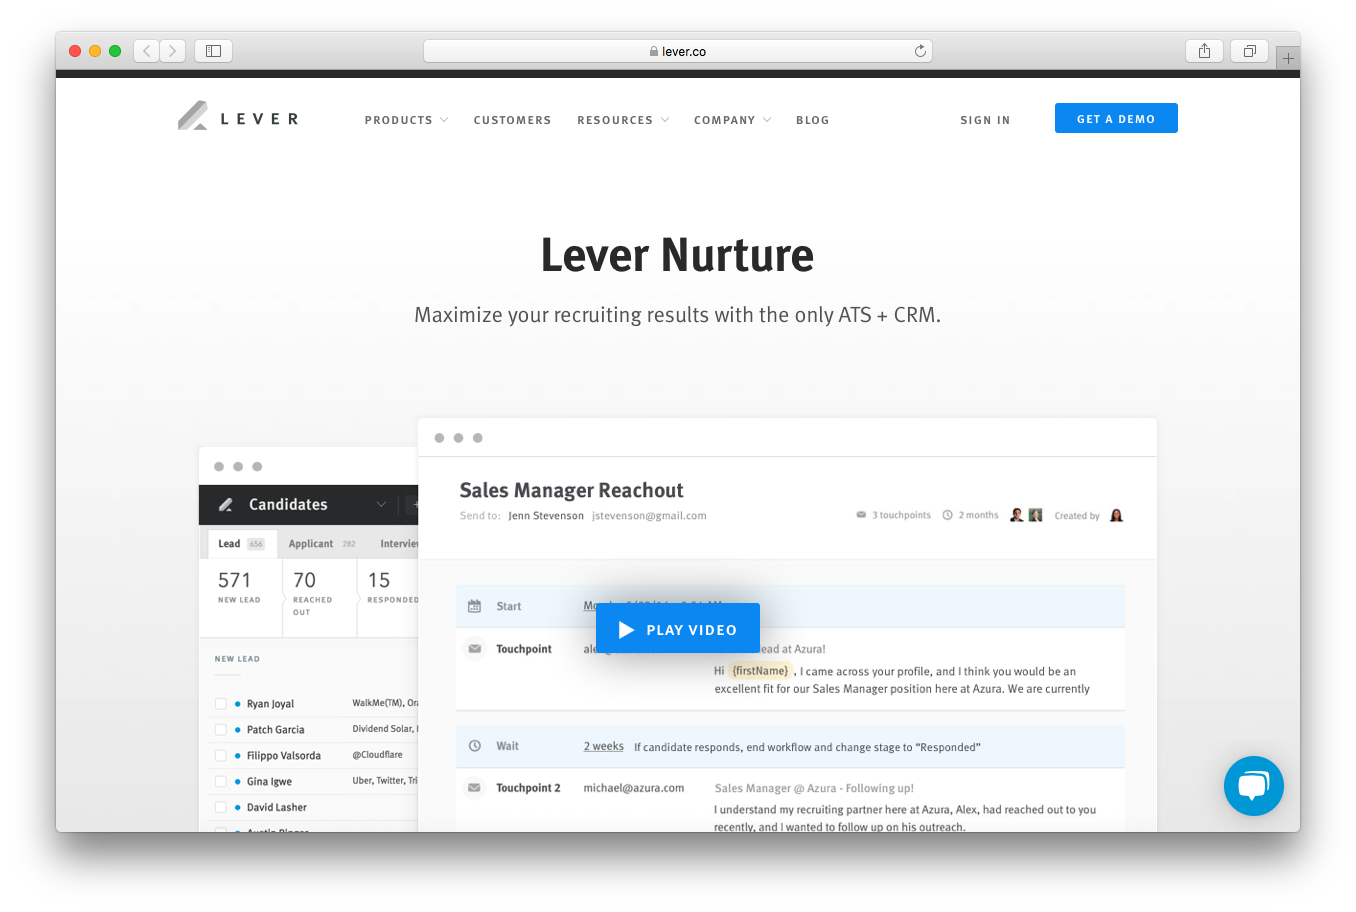 Lever nurture Maximize recruiting results ATS CRM